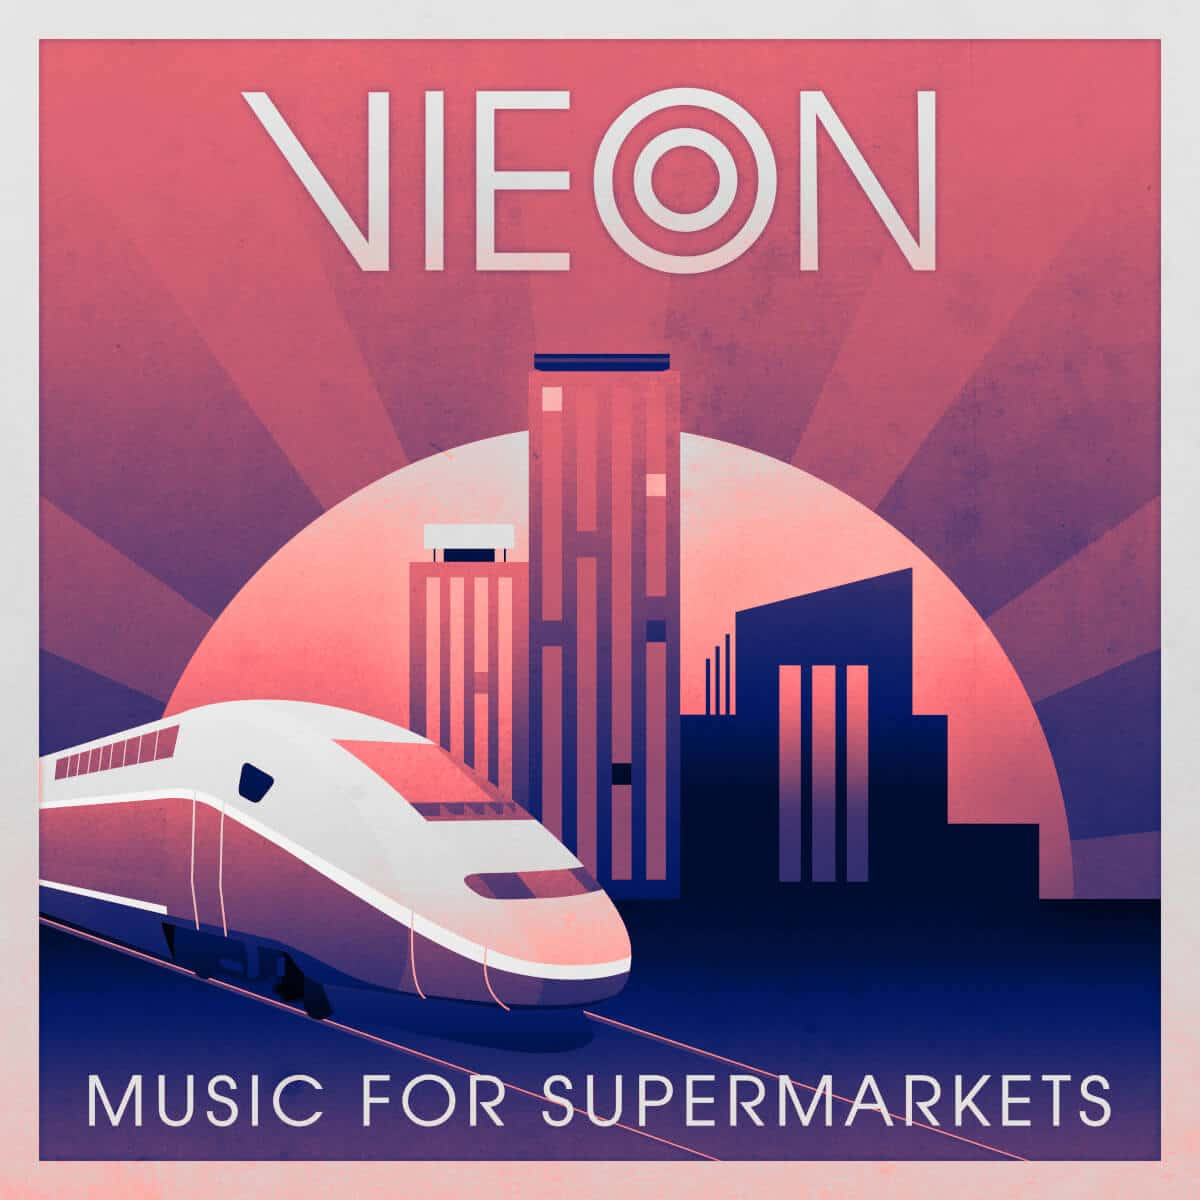 Vieon – Music For Supermarkets